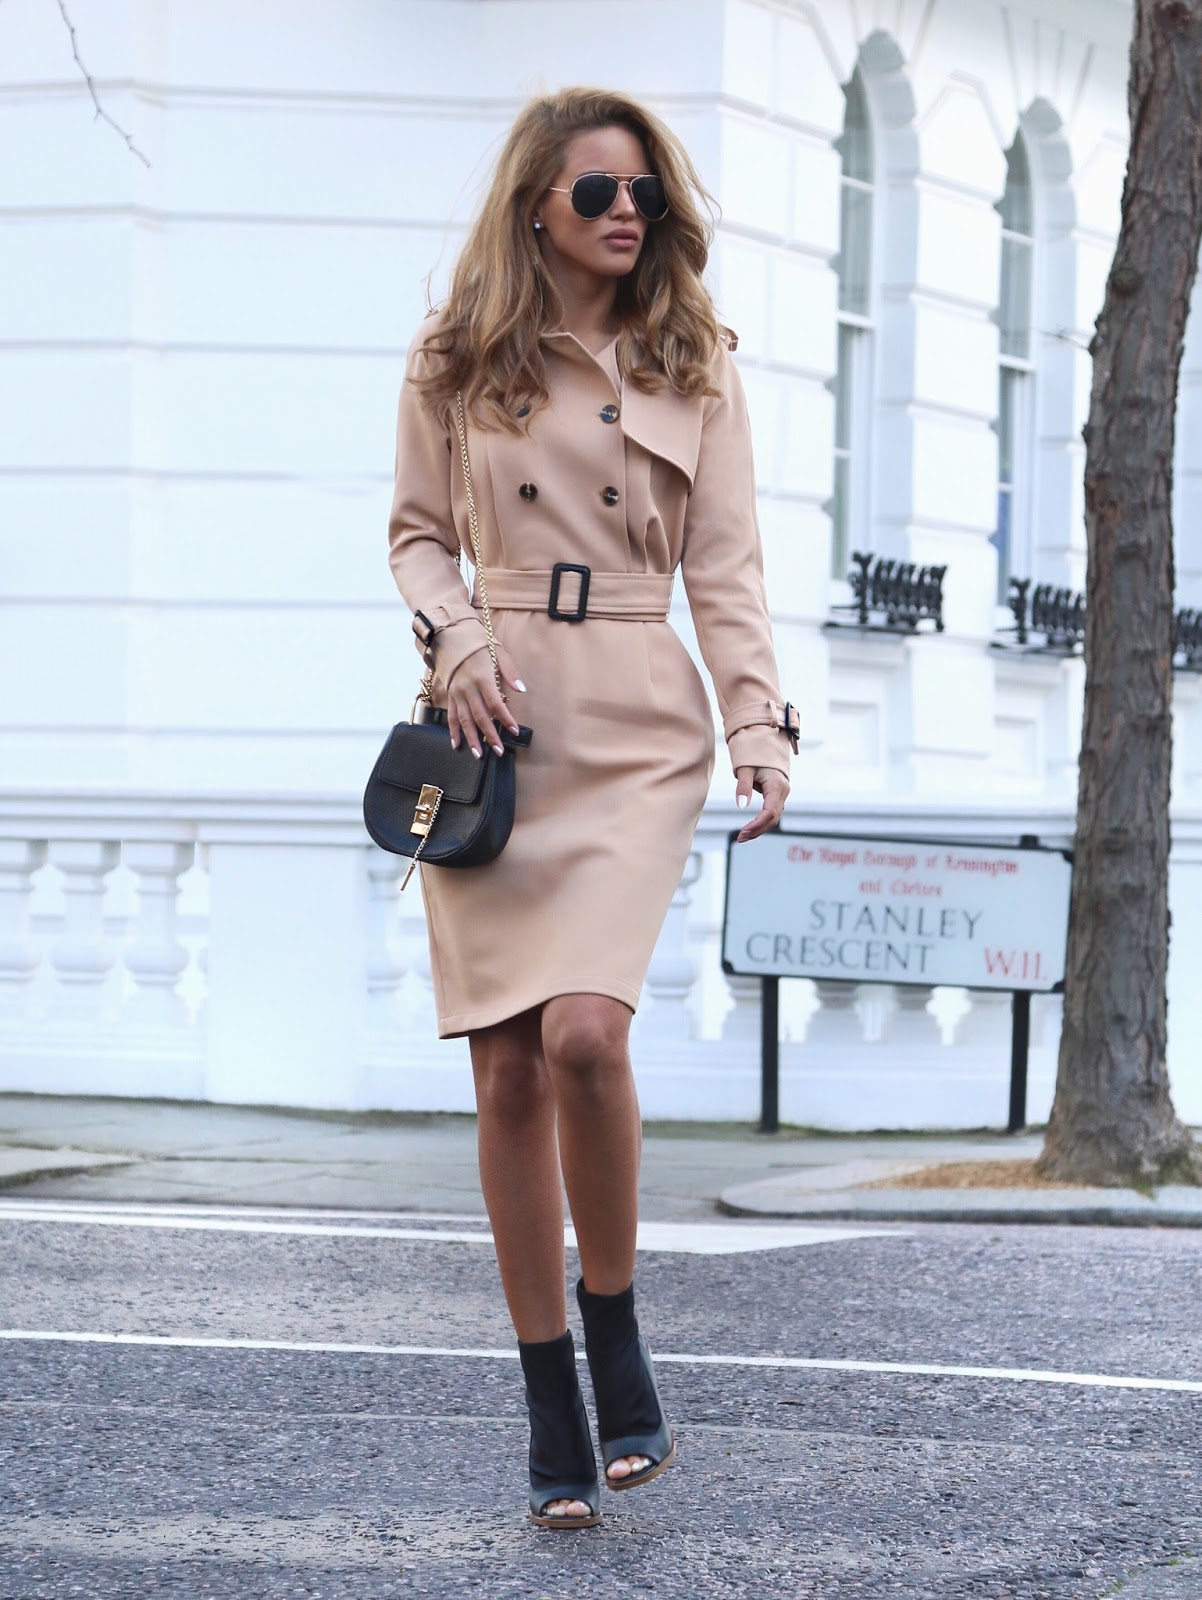 A stylish trench coat such as this one from Few Moda will glam up any outfit, and is perfect for every day work or leisure wear! A pair of heeled boots can also smarten up this look for more formal occasions. Via Nada Adelle. Trench: Few Moda, Ankle Boot: Asos, Bag: Yesstyle.